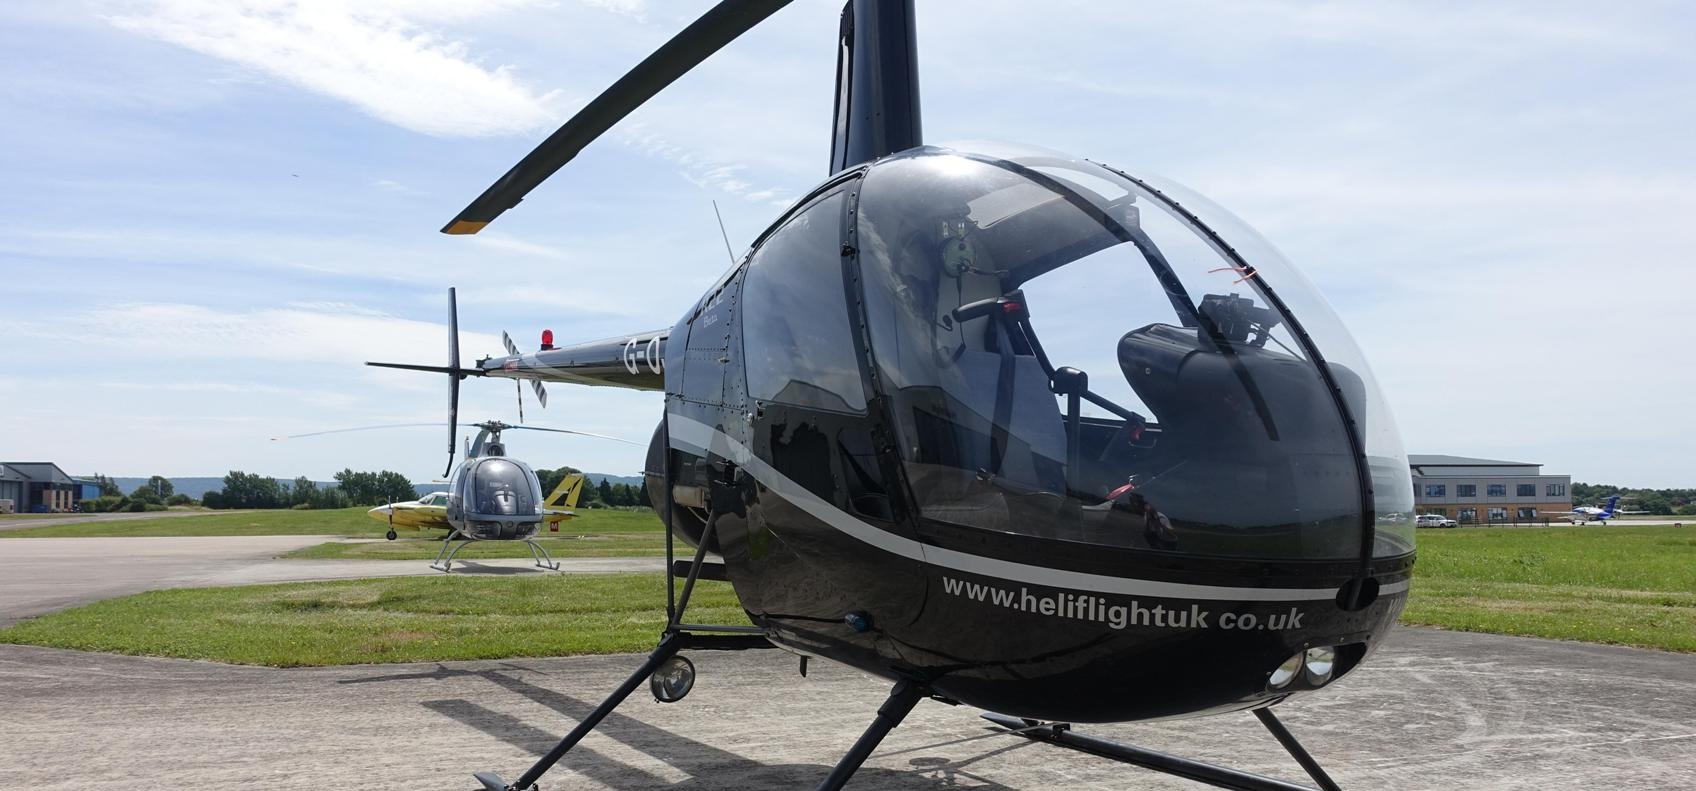 R22 Helicopter Trial Flight Lesson In Gloucestershire (30 Mins)